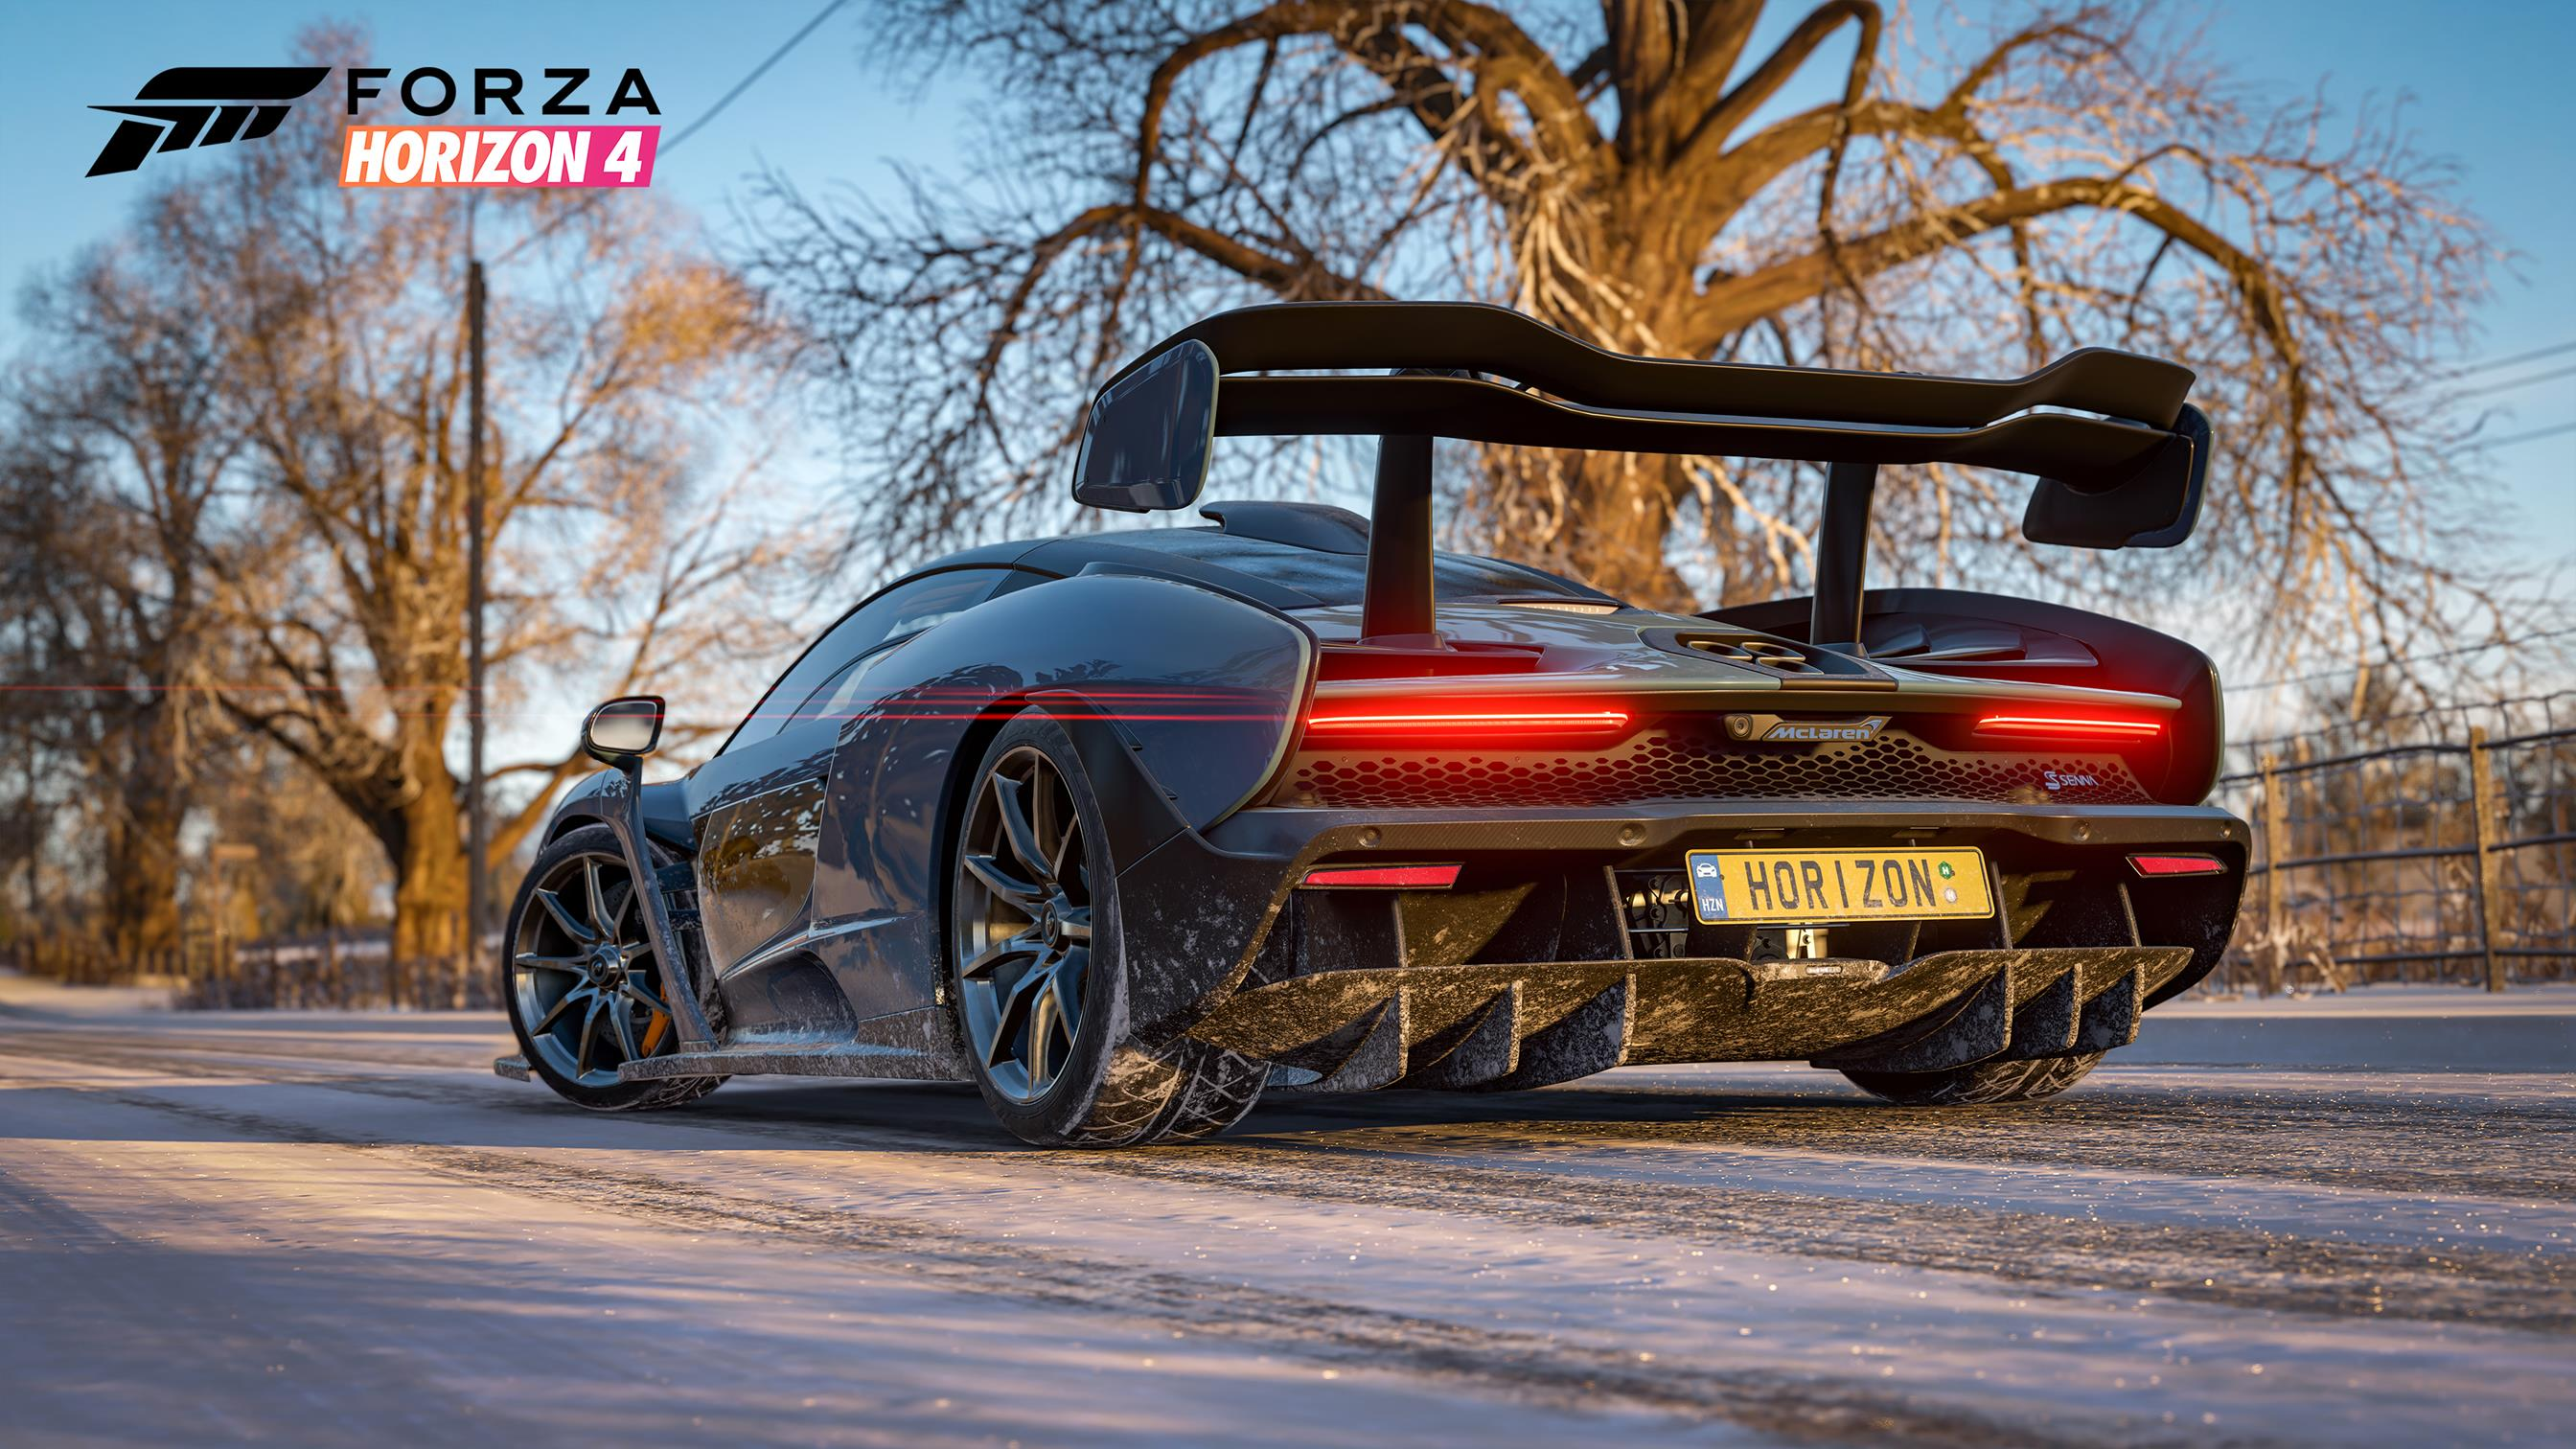 forza horizon 4 39 s changing seasons bring big graphical upgrades over its predecessors report. Black Bedroom Furniture Sets. Home Design Ideas